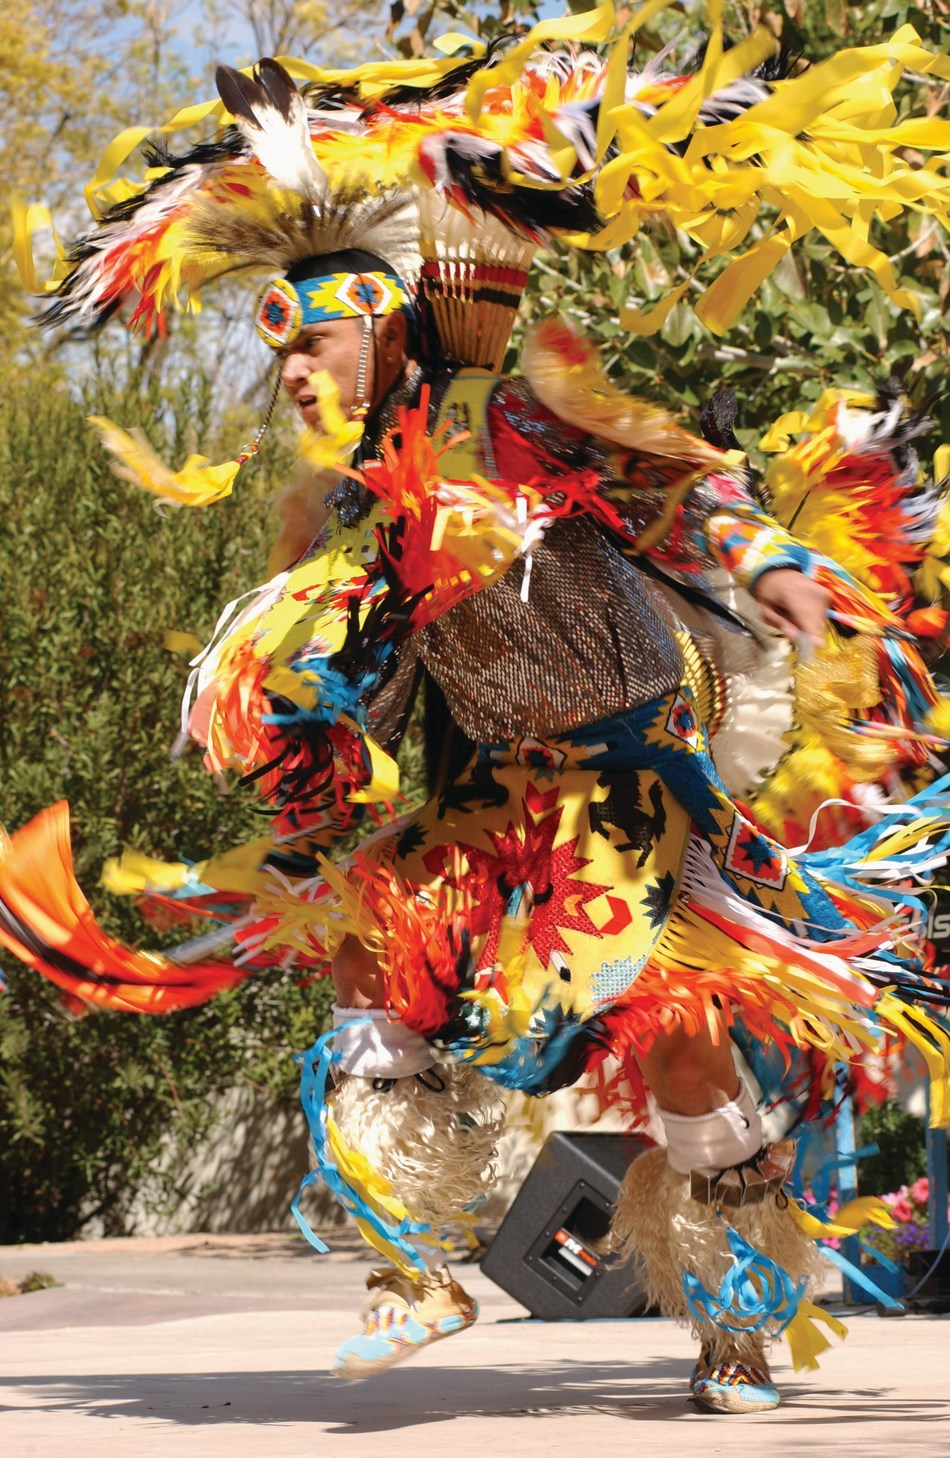 Experience the rich and varied cultures of Native American nations through storytelling, song and dance during the 15th anniversary of Native Trails.